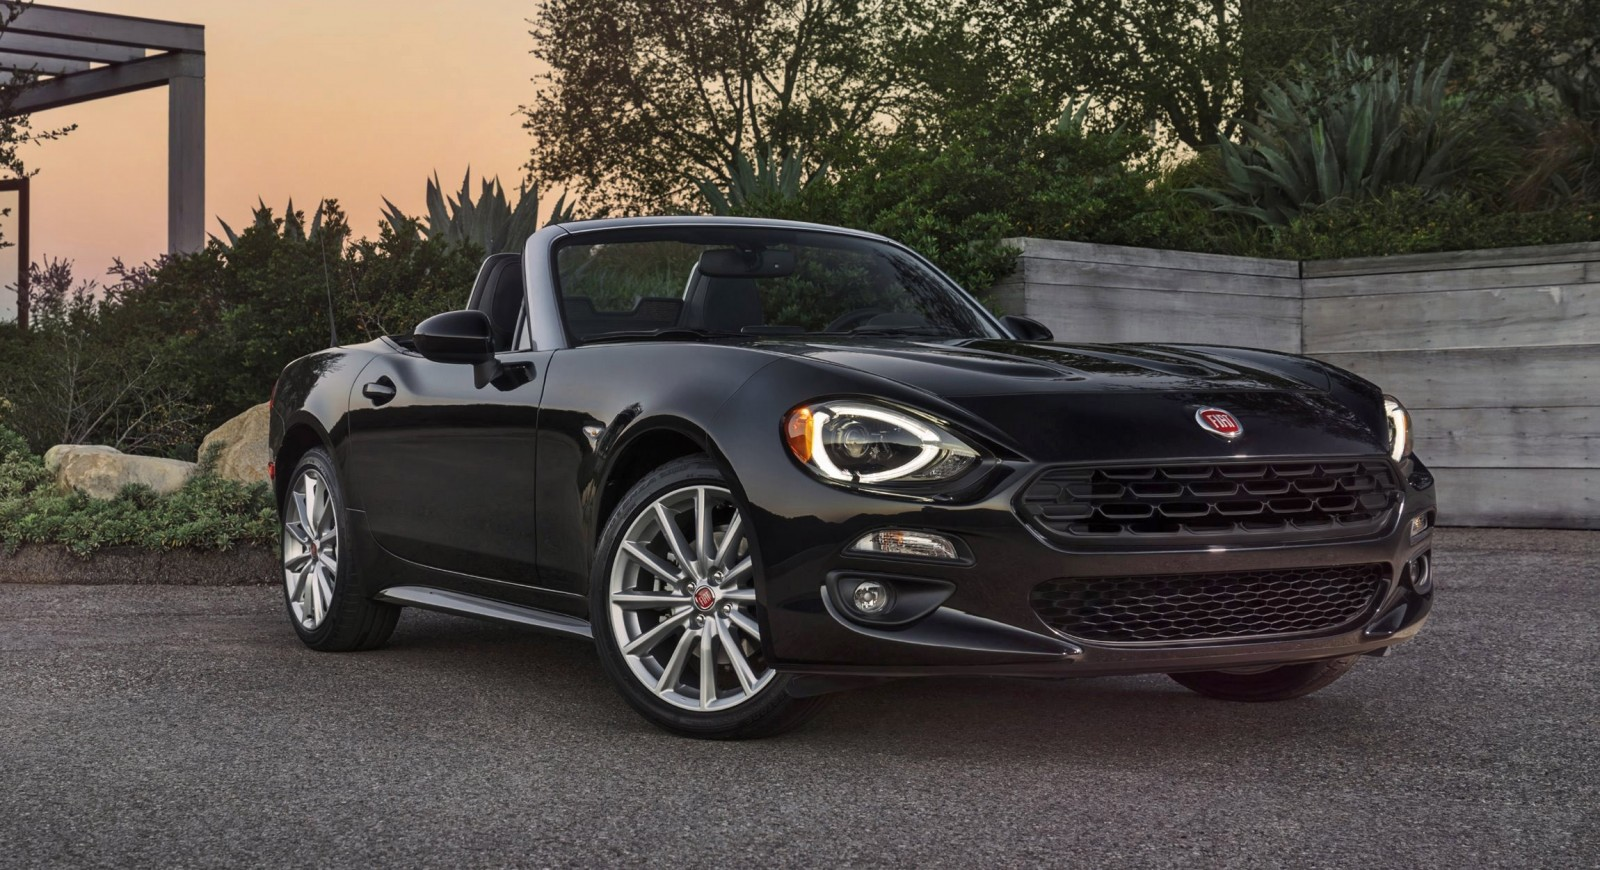 mountain drive 2017 fiat 124 spider by anthony fongaro car revs. Black Bedroom Furniture Sets. Home Design Ideas